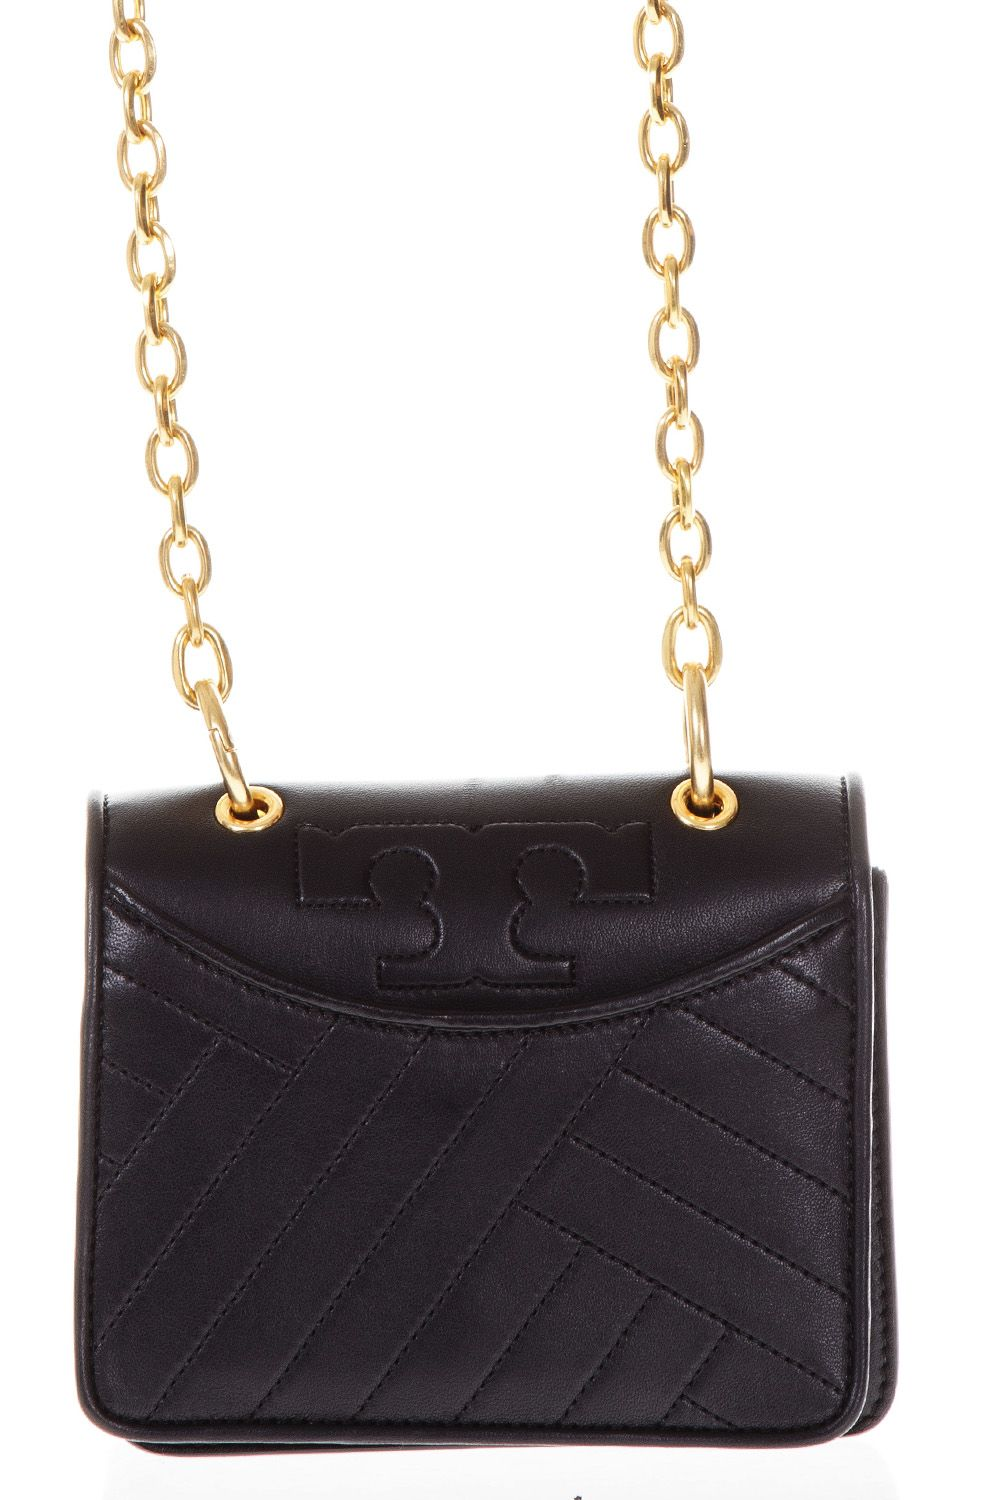 Tory Burch Alexa Convertible Mini Shoulder Bag